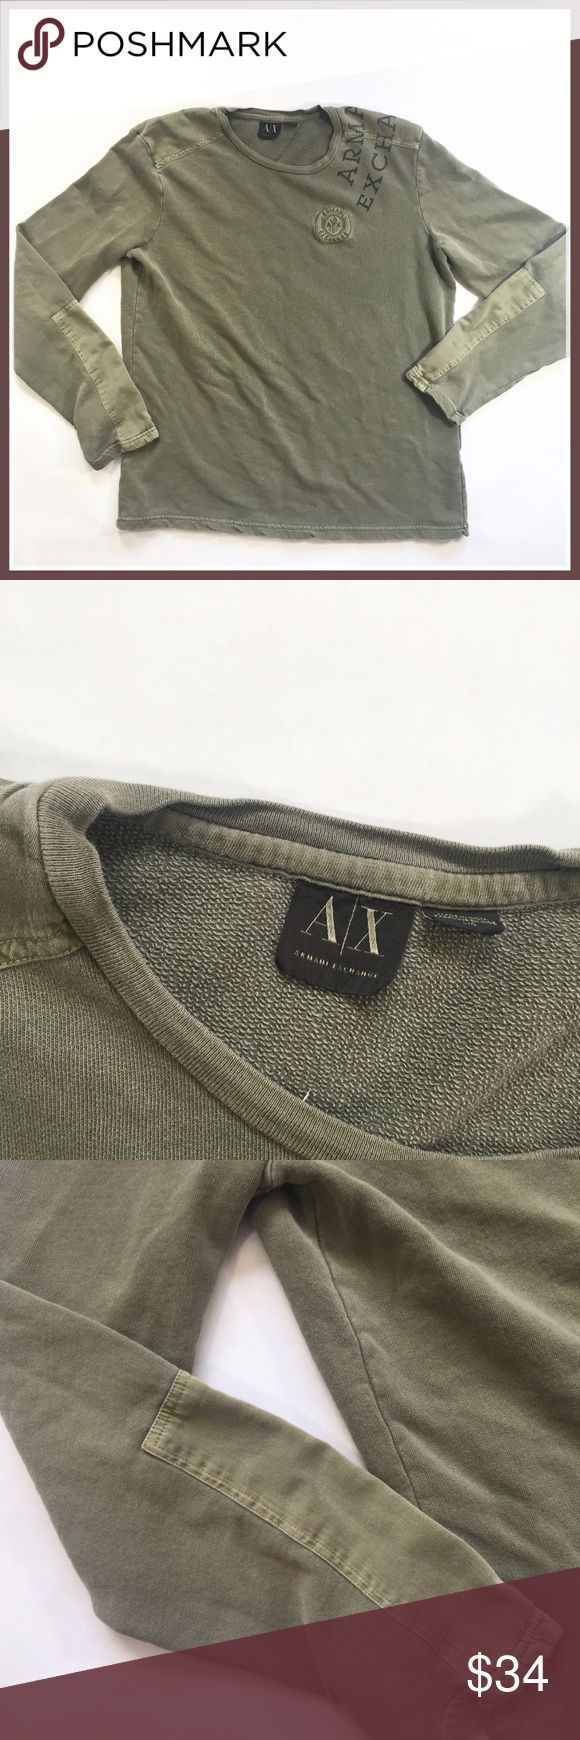 Armani Exchange Military Green Sweatshirt Top Awesome top from Armani Exchange in excellent condition. Size large and features patchwork on chest and sleeves. Logo across right shoulder. Pit to pit measures 23.5 inches and length is 27 inches. Thanks for looking! Armani Exchange Shirts Tees - Long Sleeve